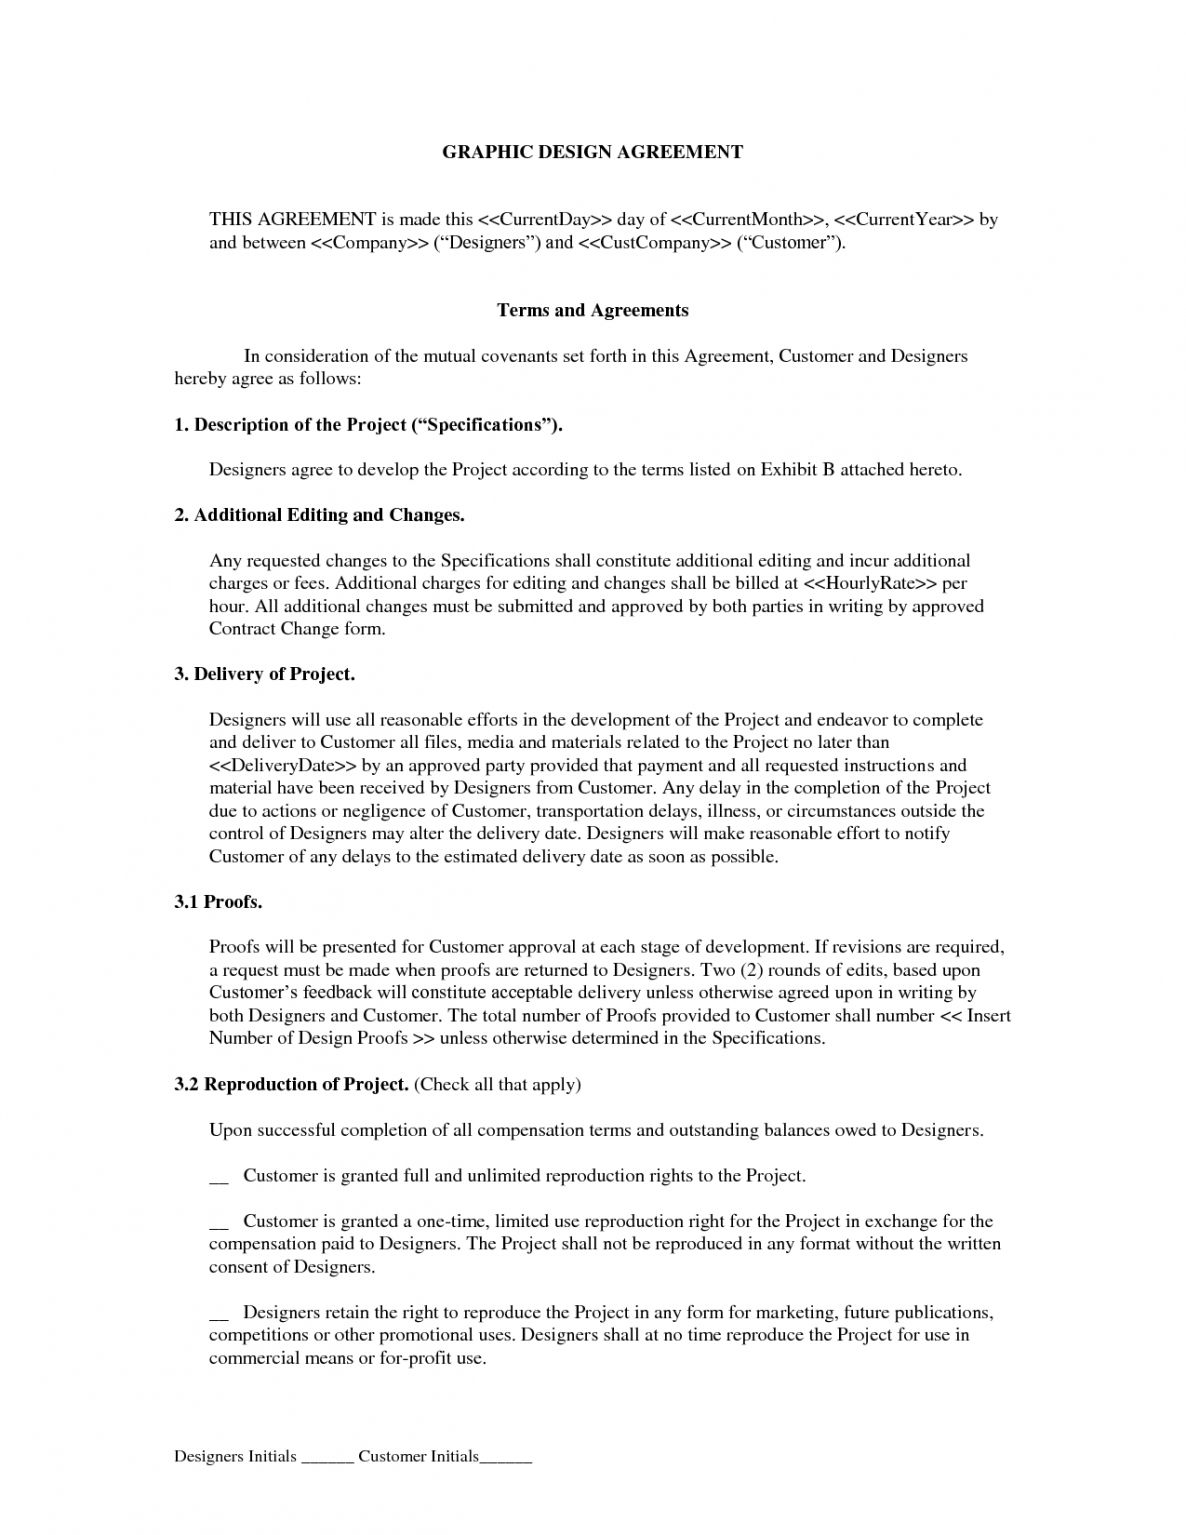 Freelance Letter Of Agreement Template How To Write An Interior Design Or Brief Website WordPress Nextbook Co Editor